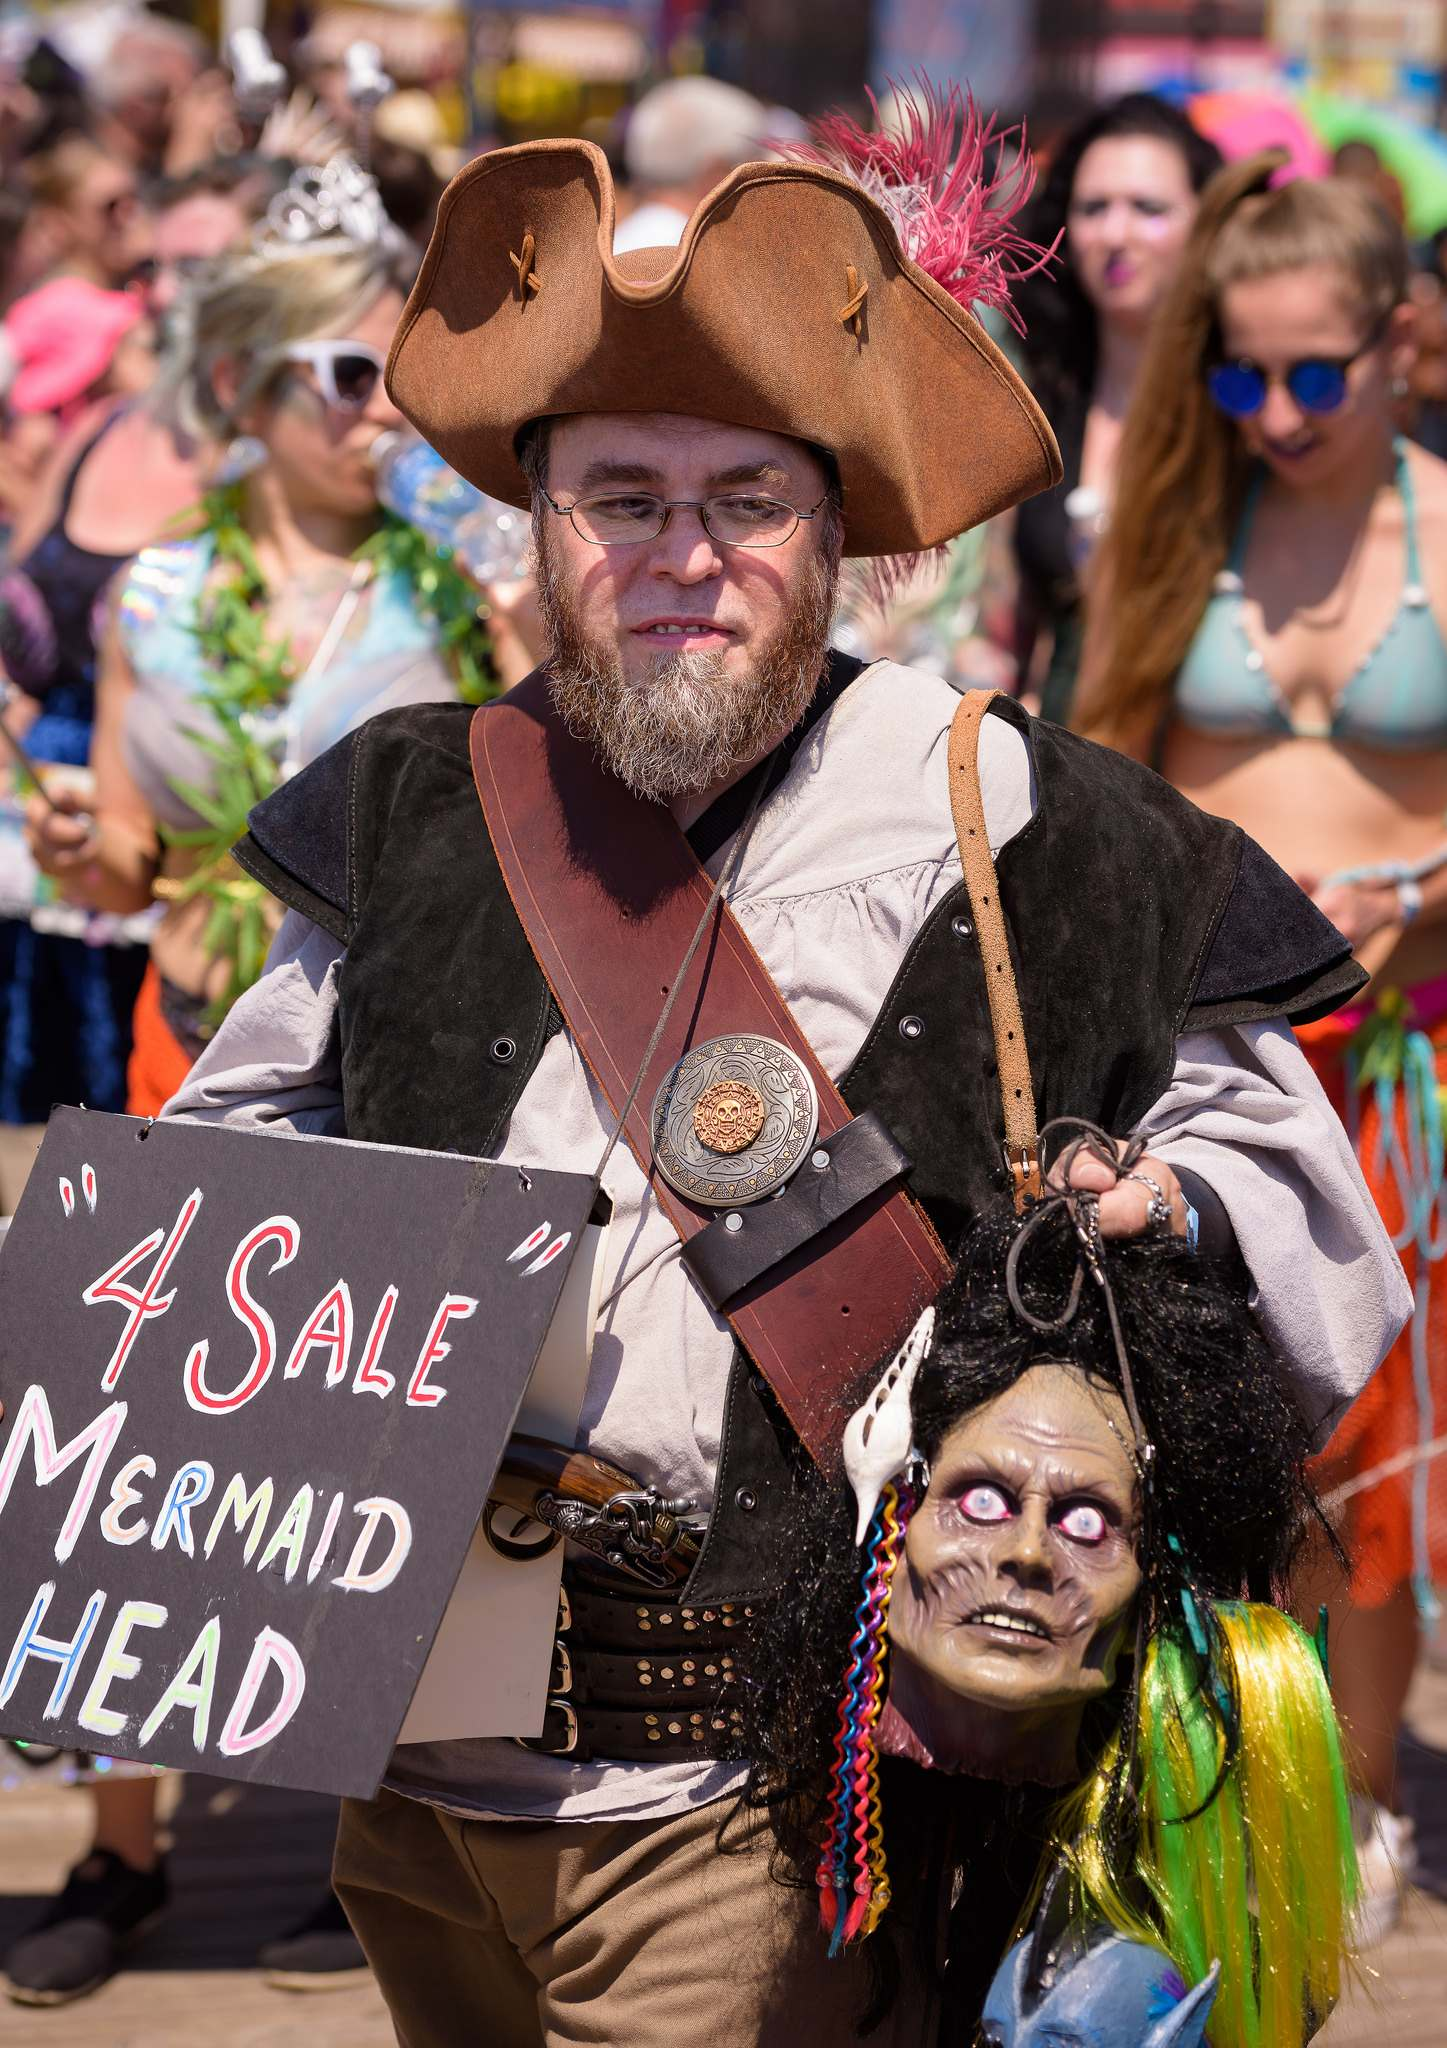 mermaid parade2 2016 Coney Island Mermaid Parade in NYC